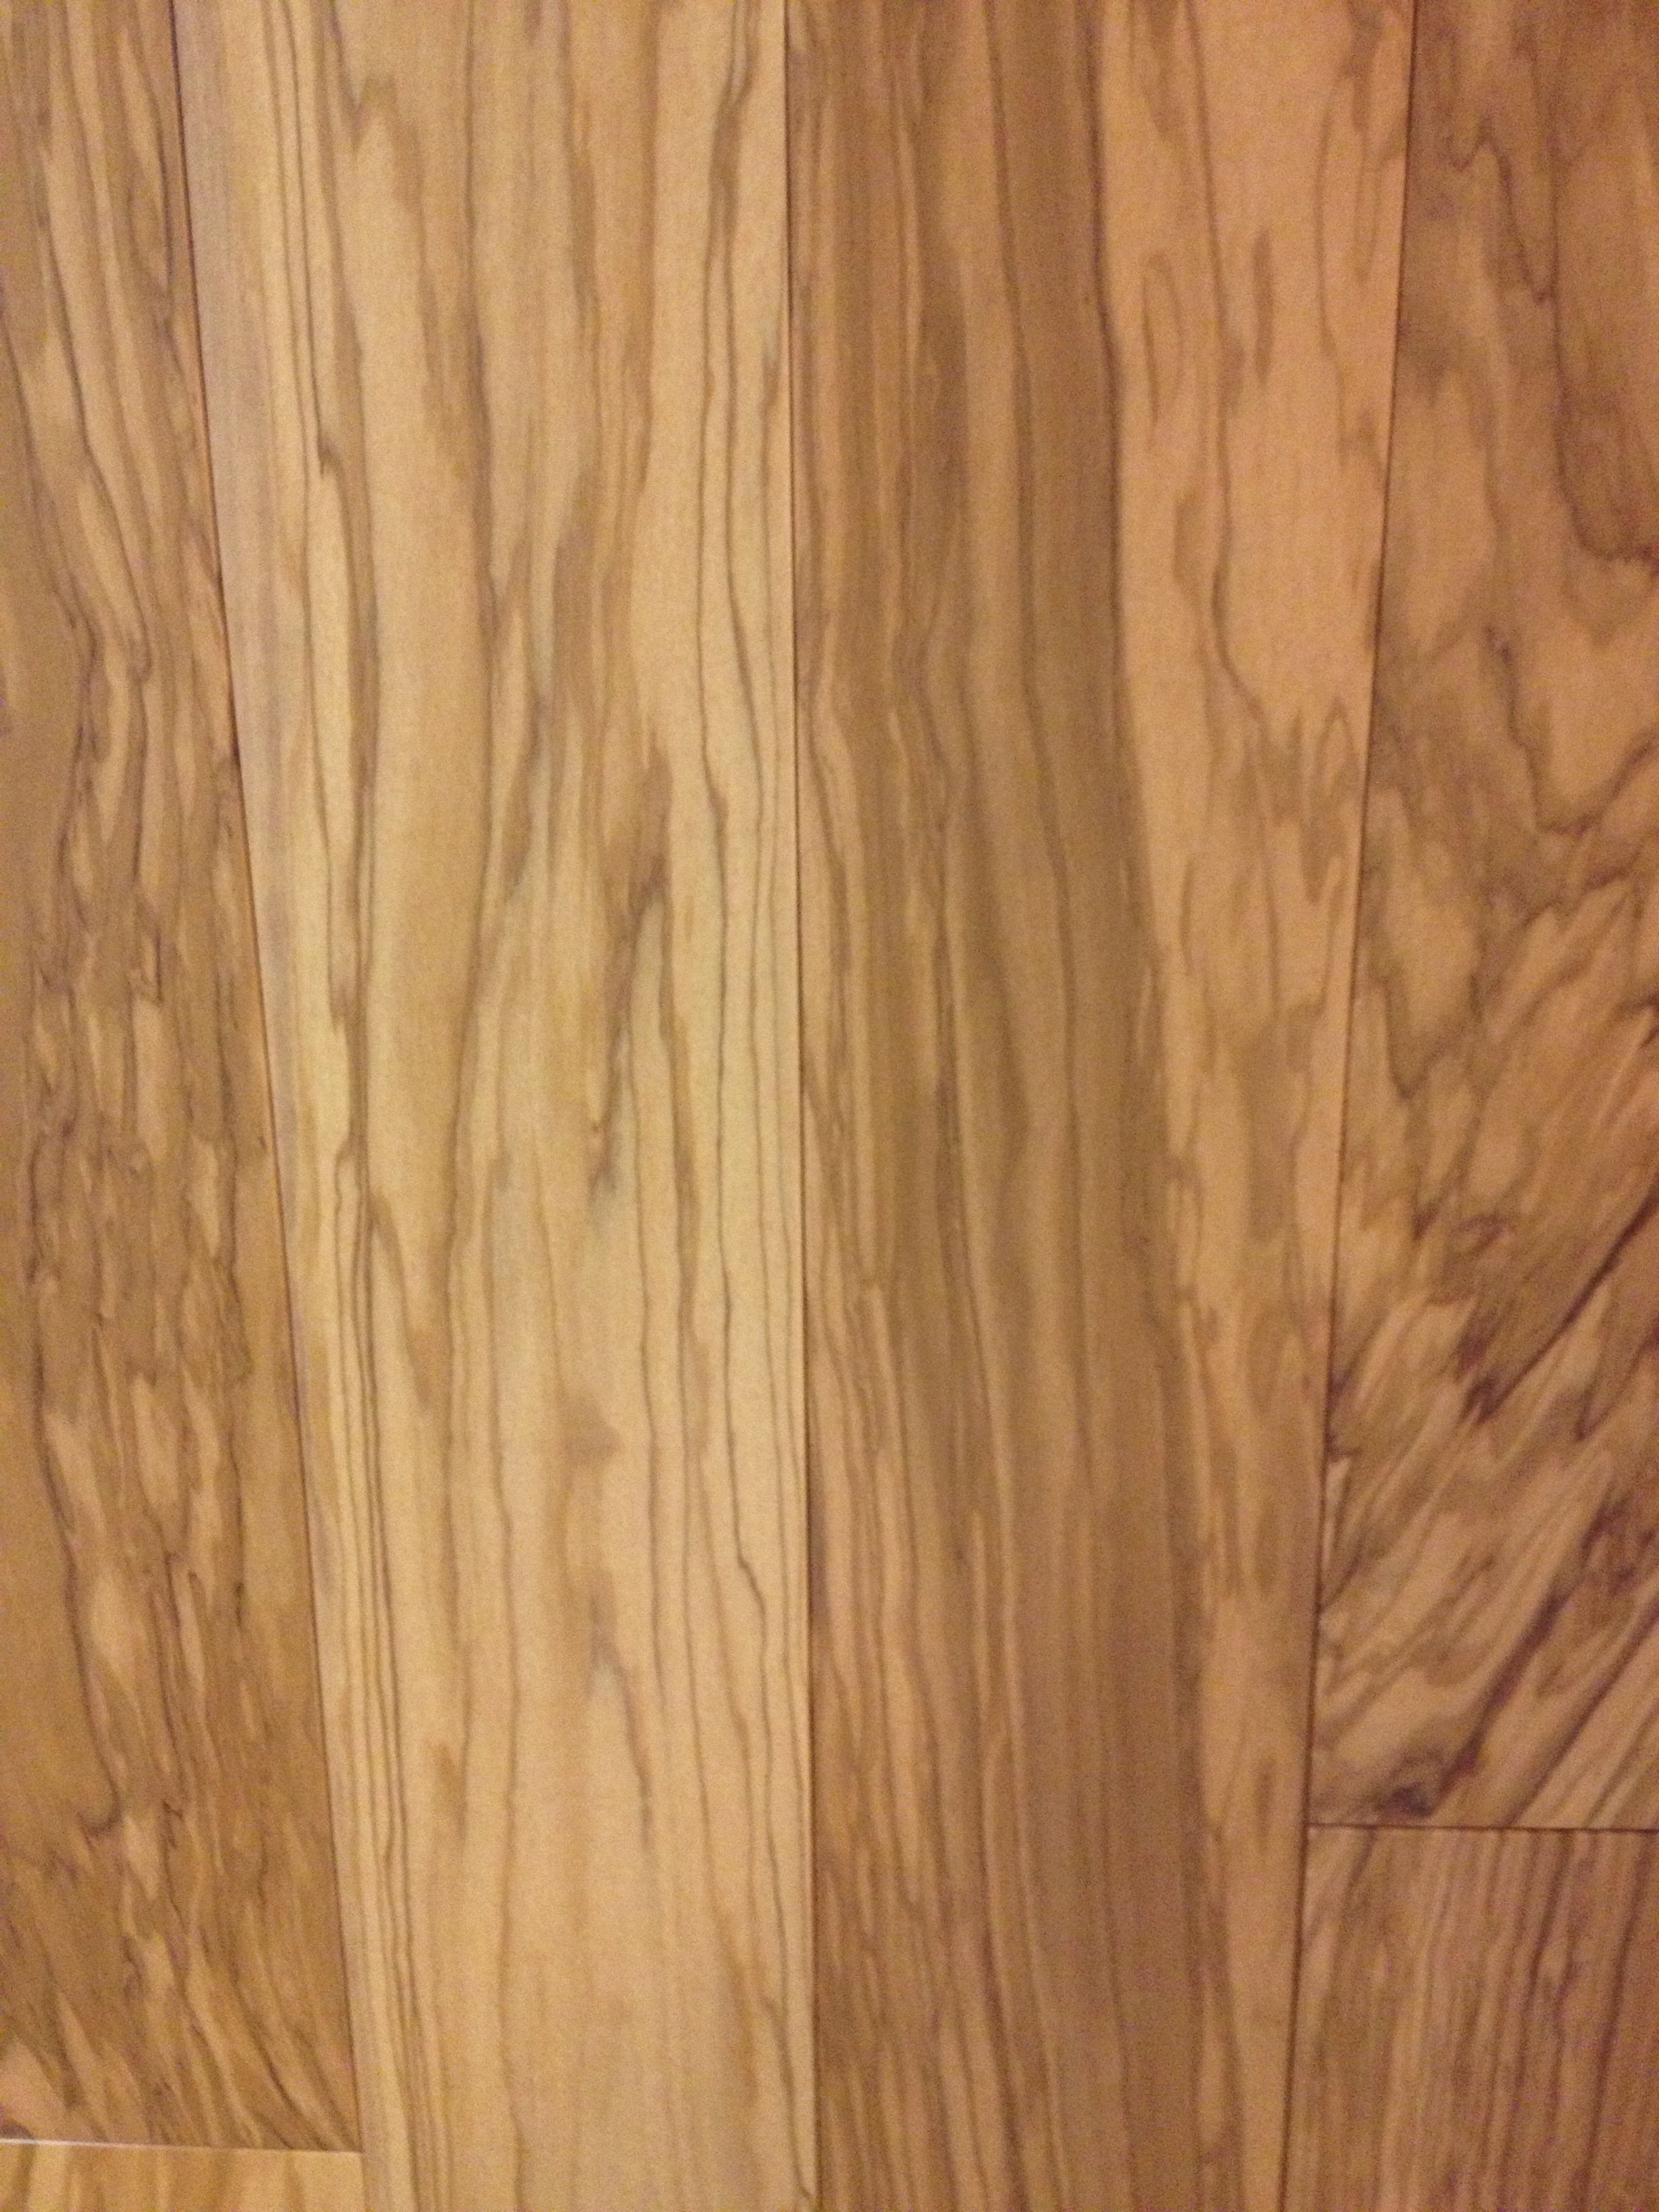 top quality hardwood flooring store of tuscany olive wood floor there is nothing quite like olive wood for pertaining to tuscany olive wood floor there is nothing quite like olive wood for turning your home